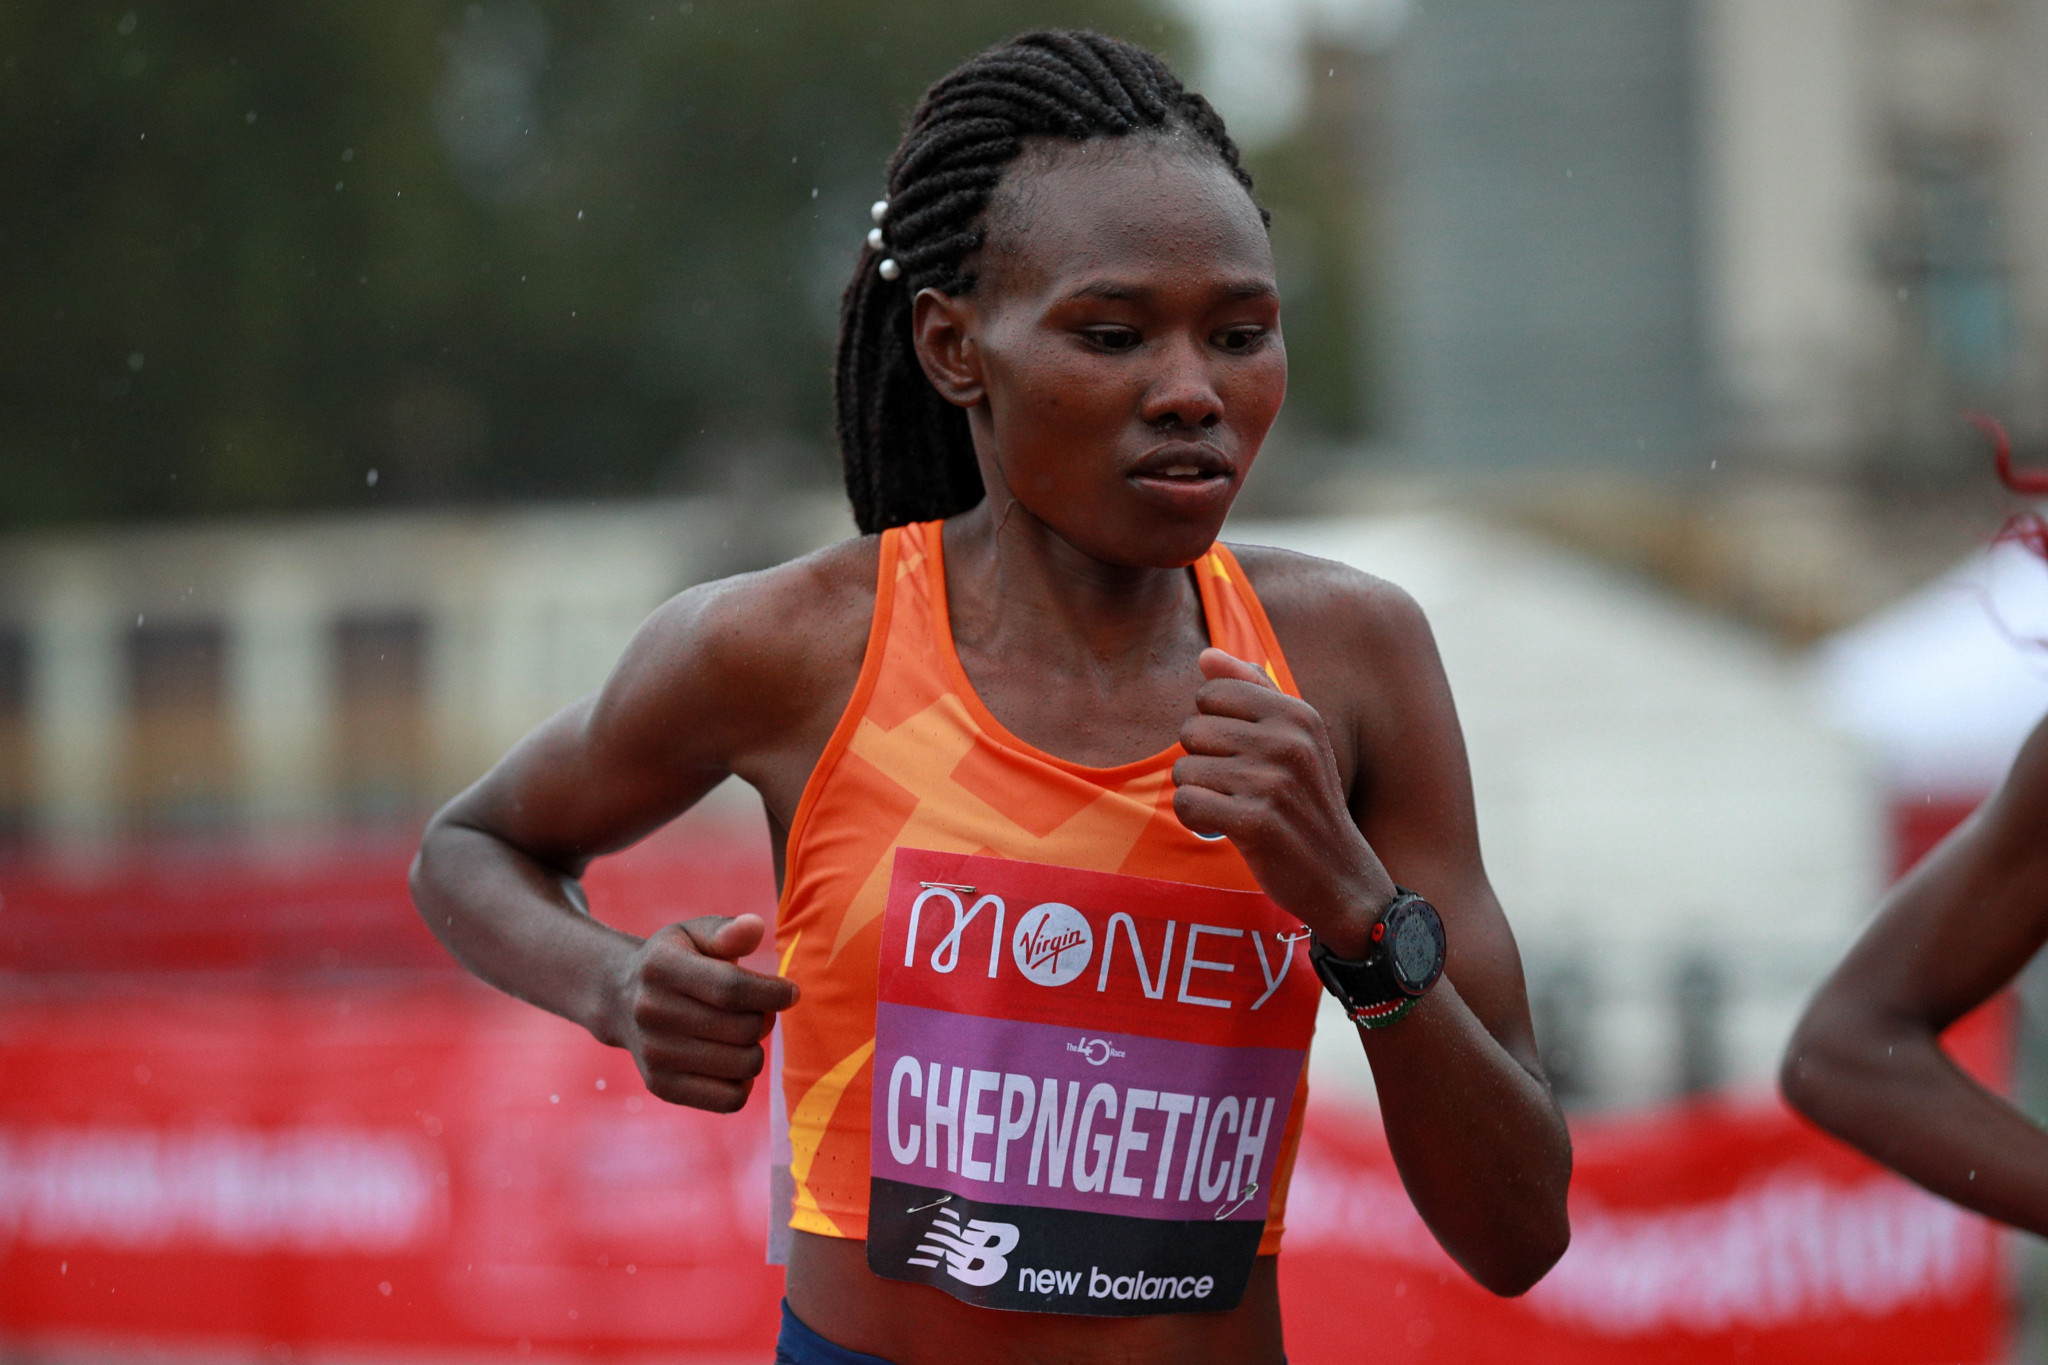 Chepngetich smashes women's half marathon world record by nearly half a minute